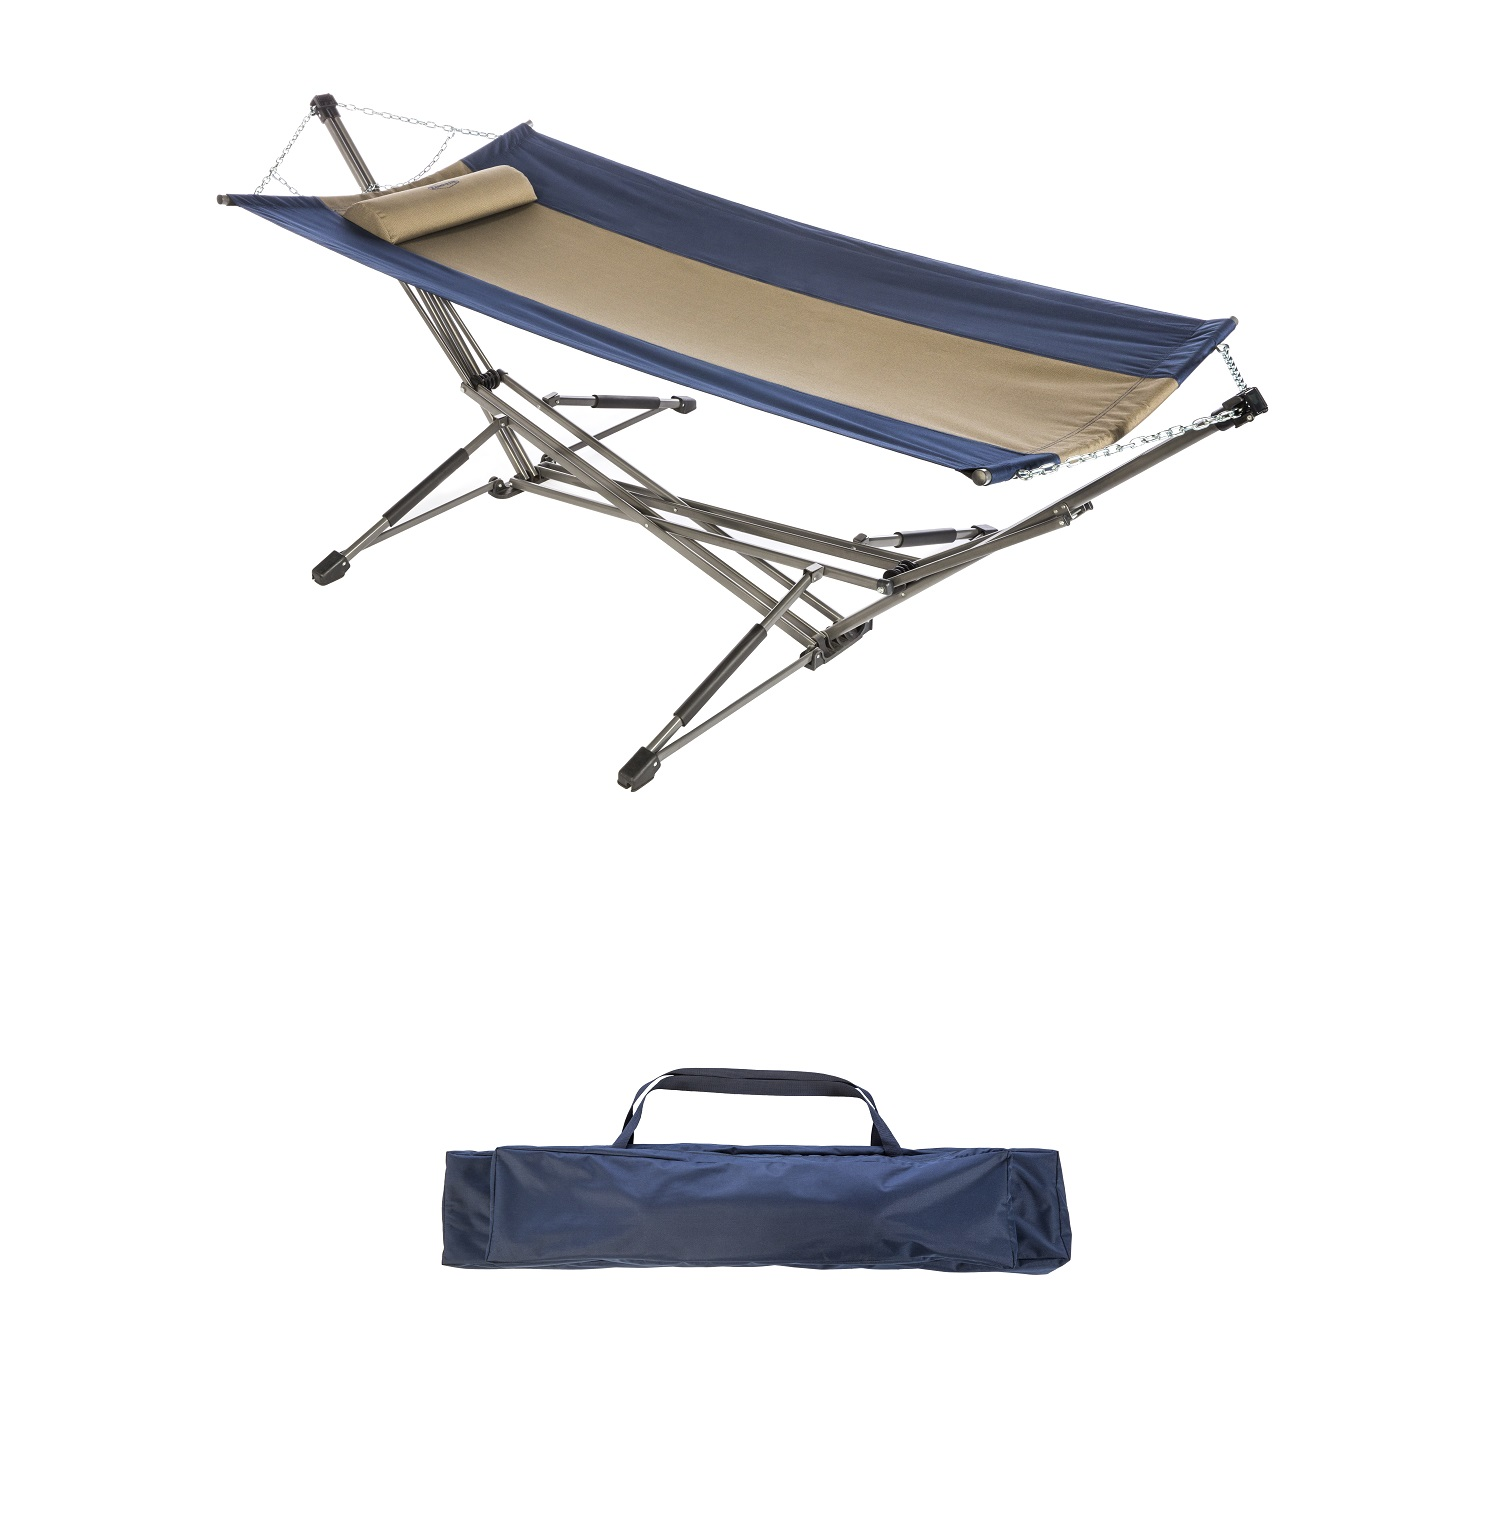 Kamp-Rite Kwik Set Hammock with Carry Bag